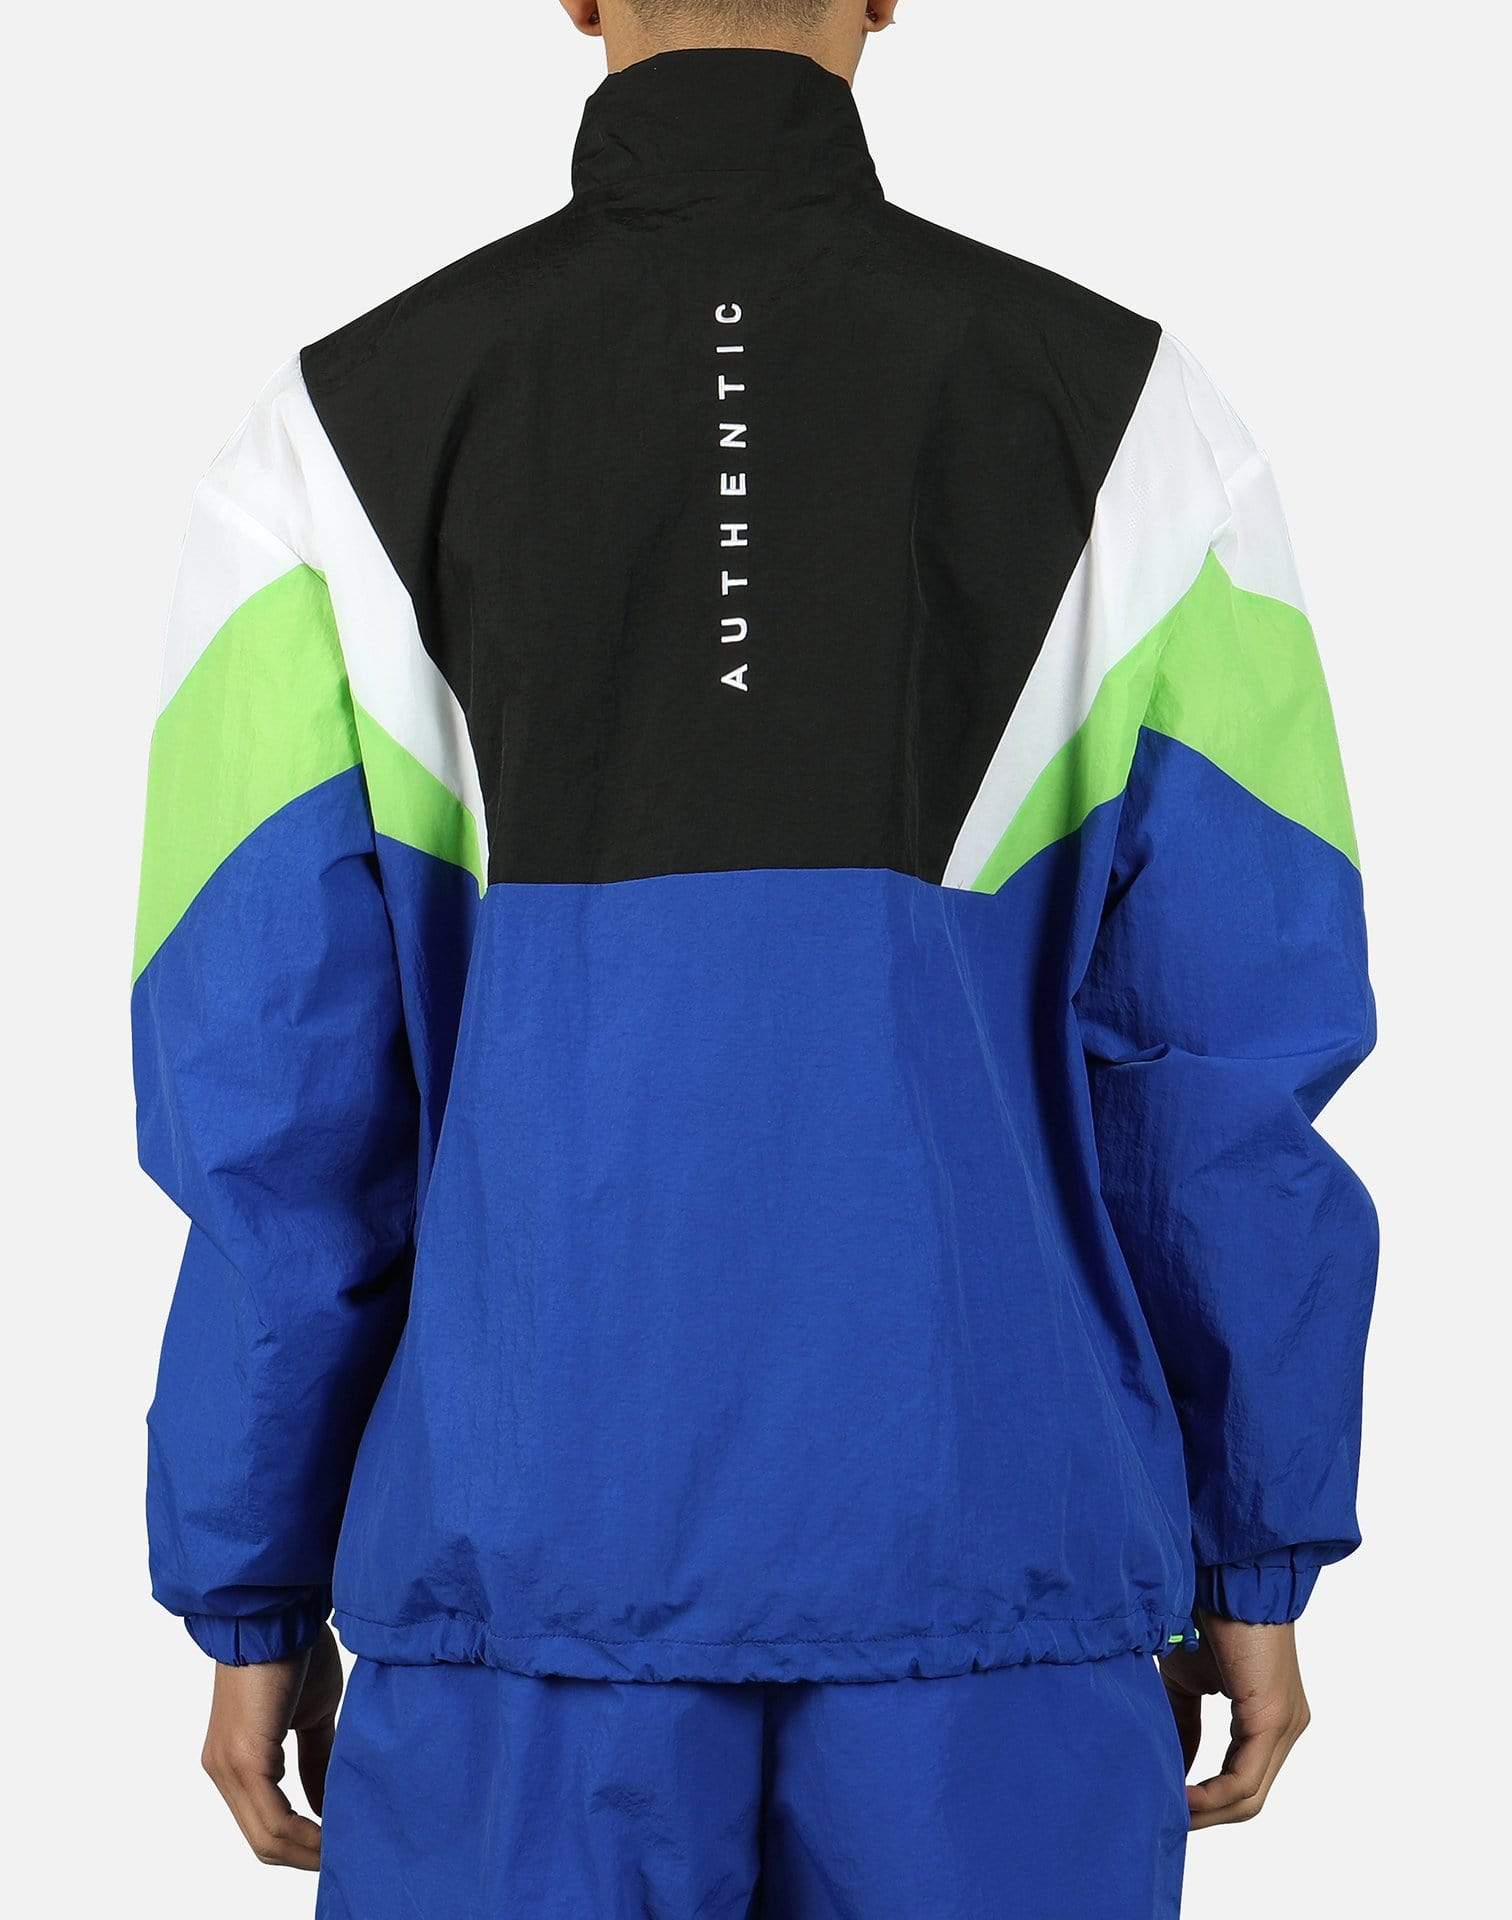 PUMA Men's 90s Archive Retro Woven Track Jacket